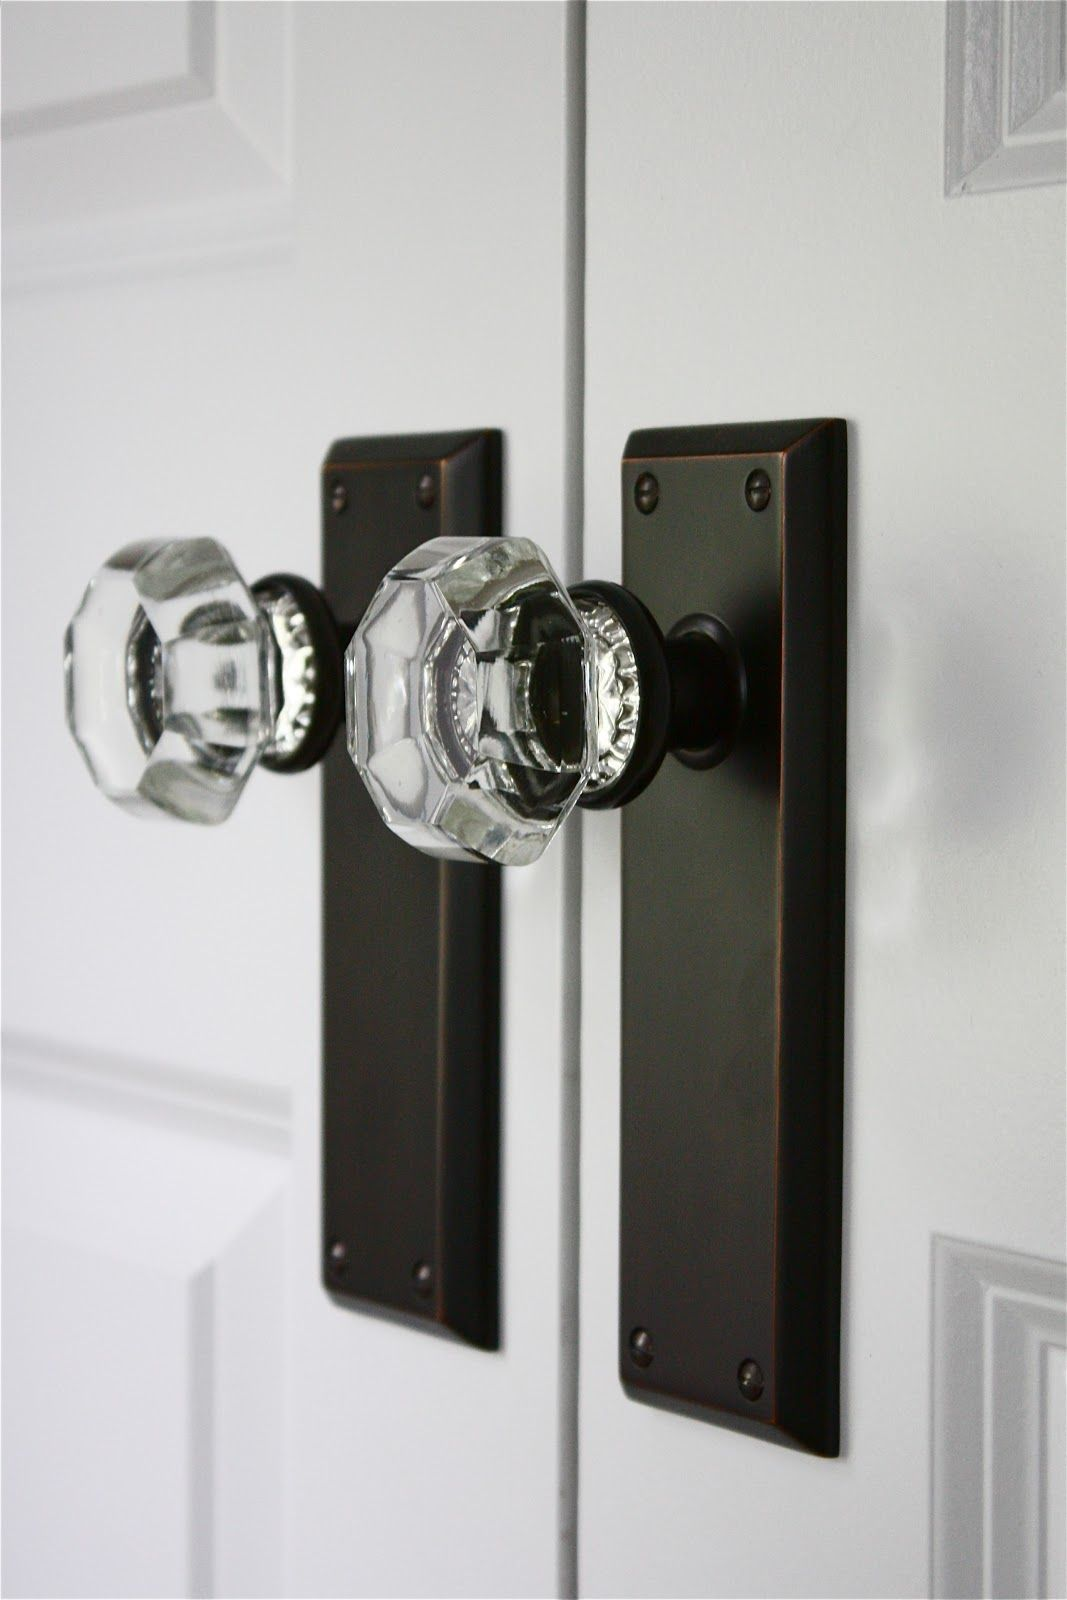 Crystal Door knobs / Home Details. Add an elegant touch to the home ...